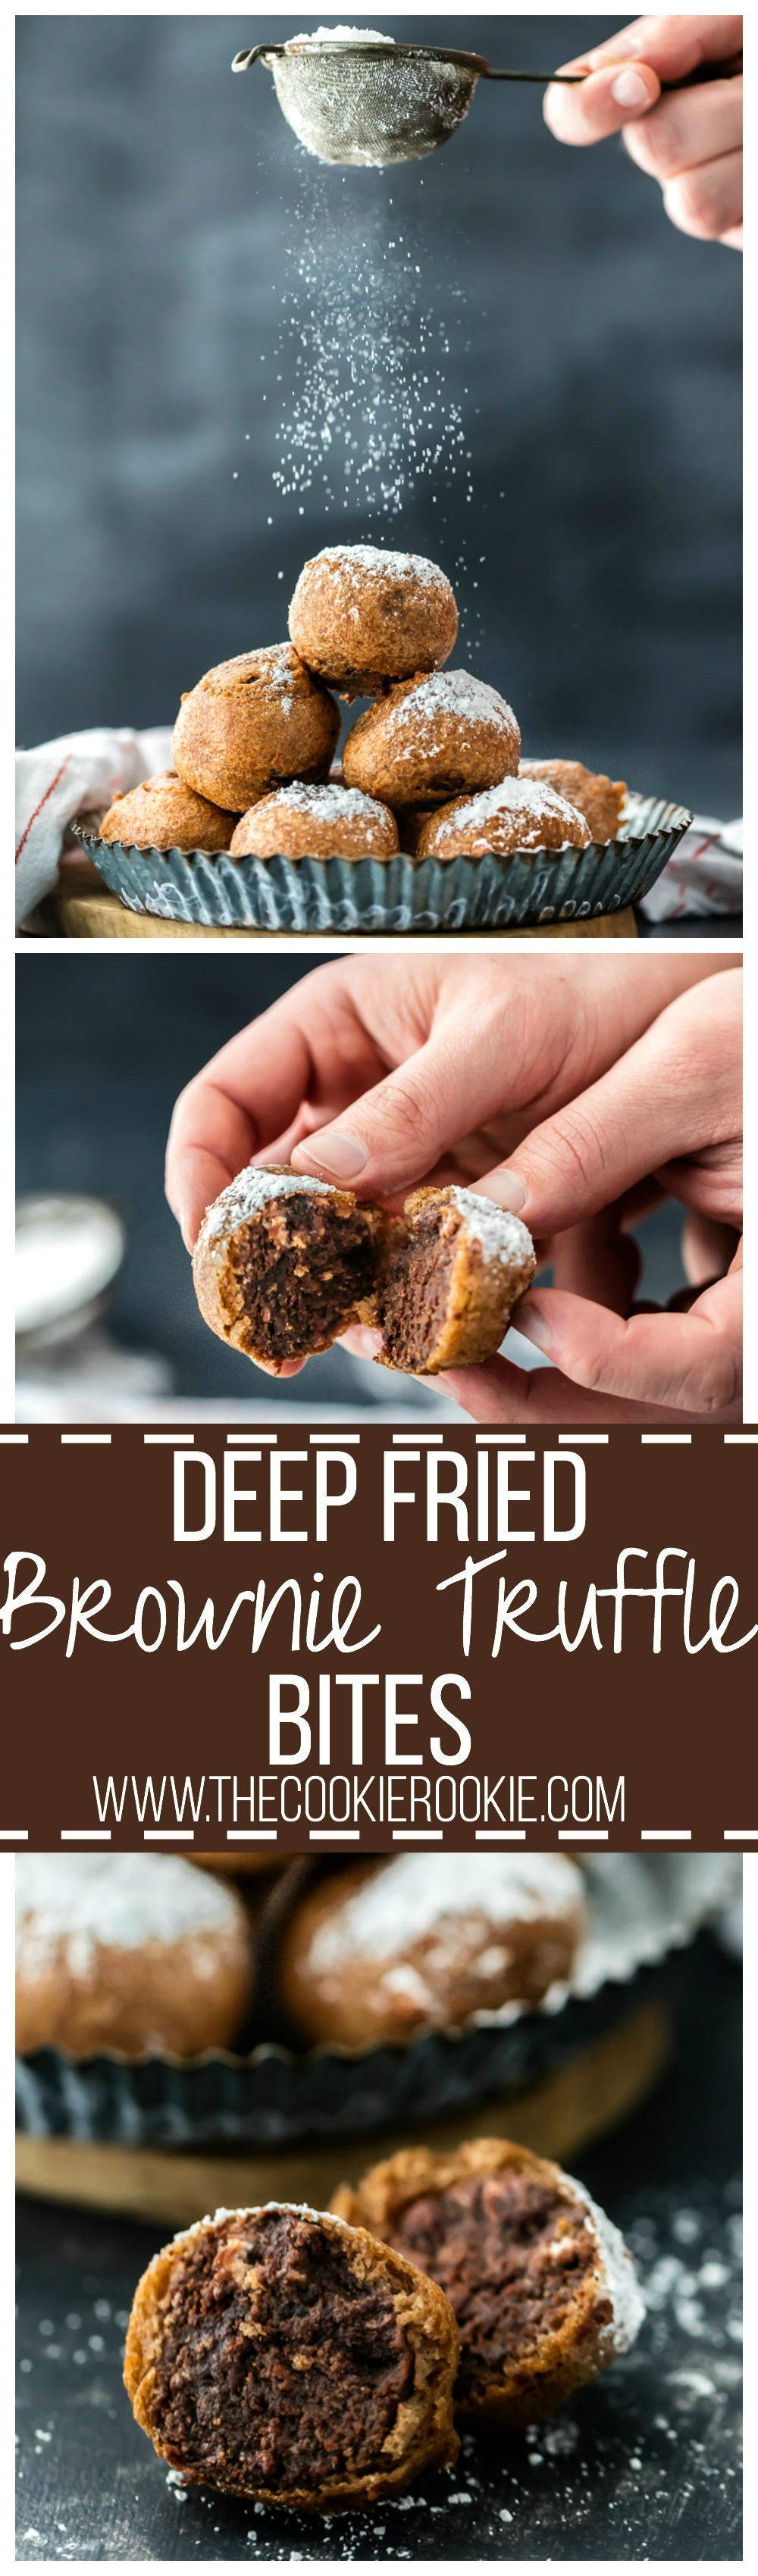 FRIED BROWNIE TRUFFLE BITES! Don't let your leftover brownies go to waste! Make fried brownie bites! Tastes like melted brownie batter. AMAZING dessert for any occasion!